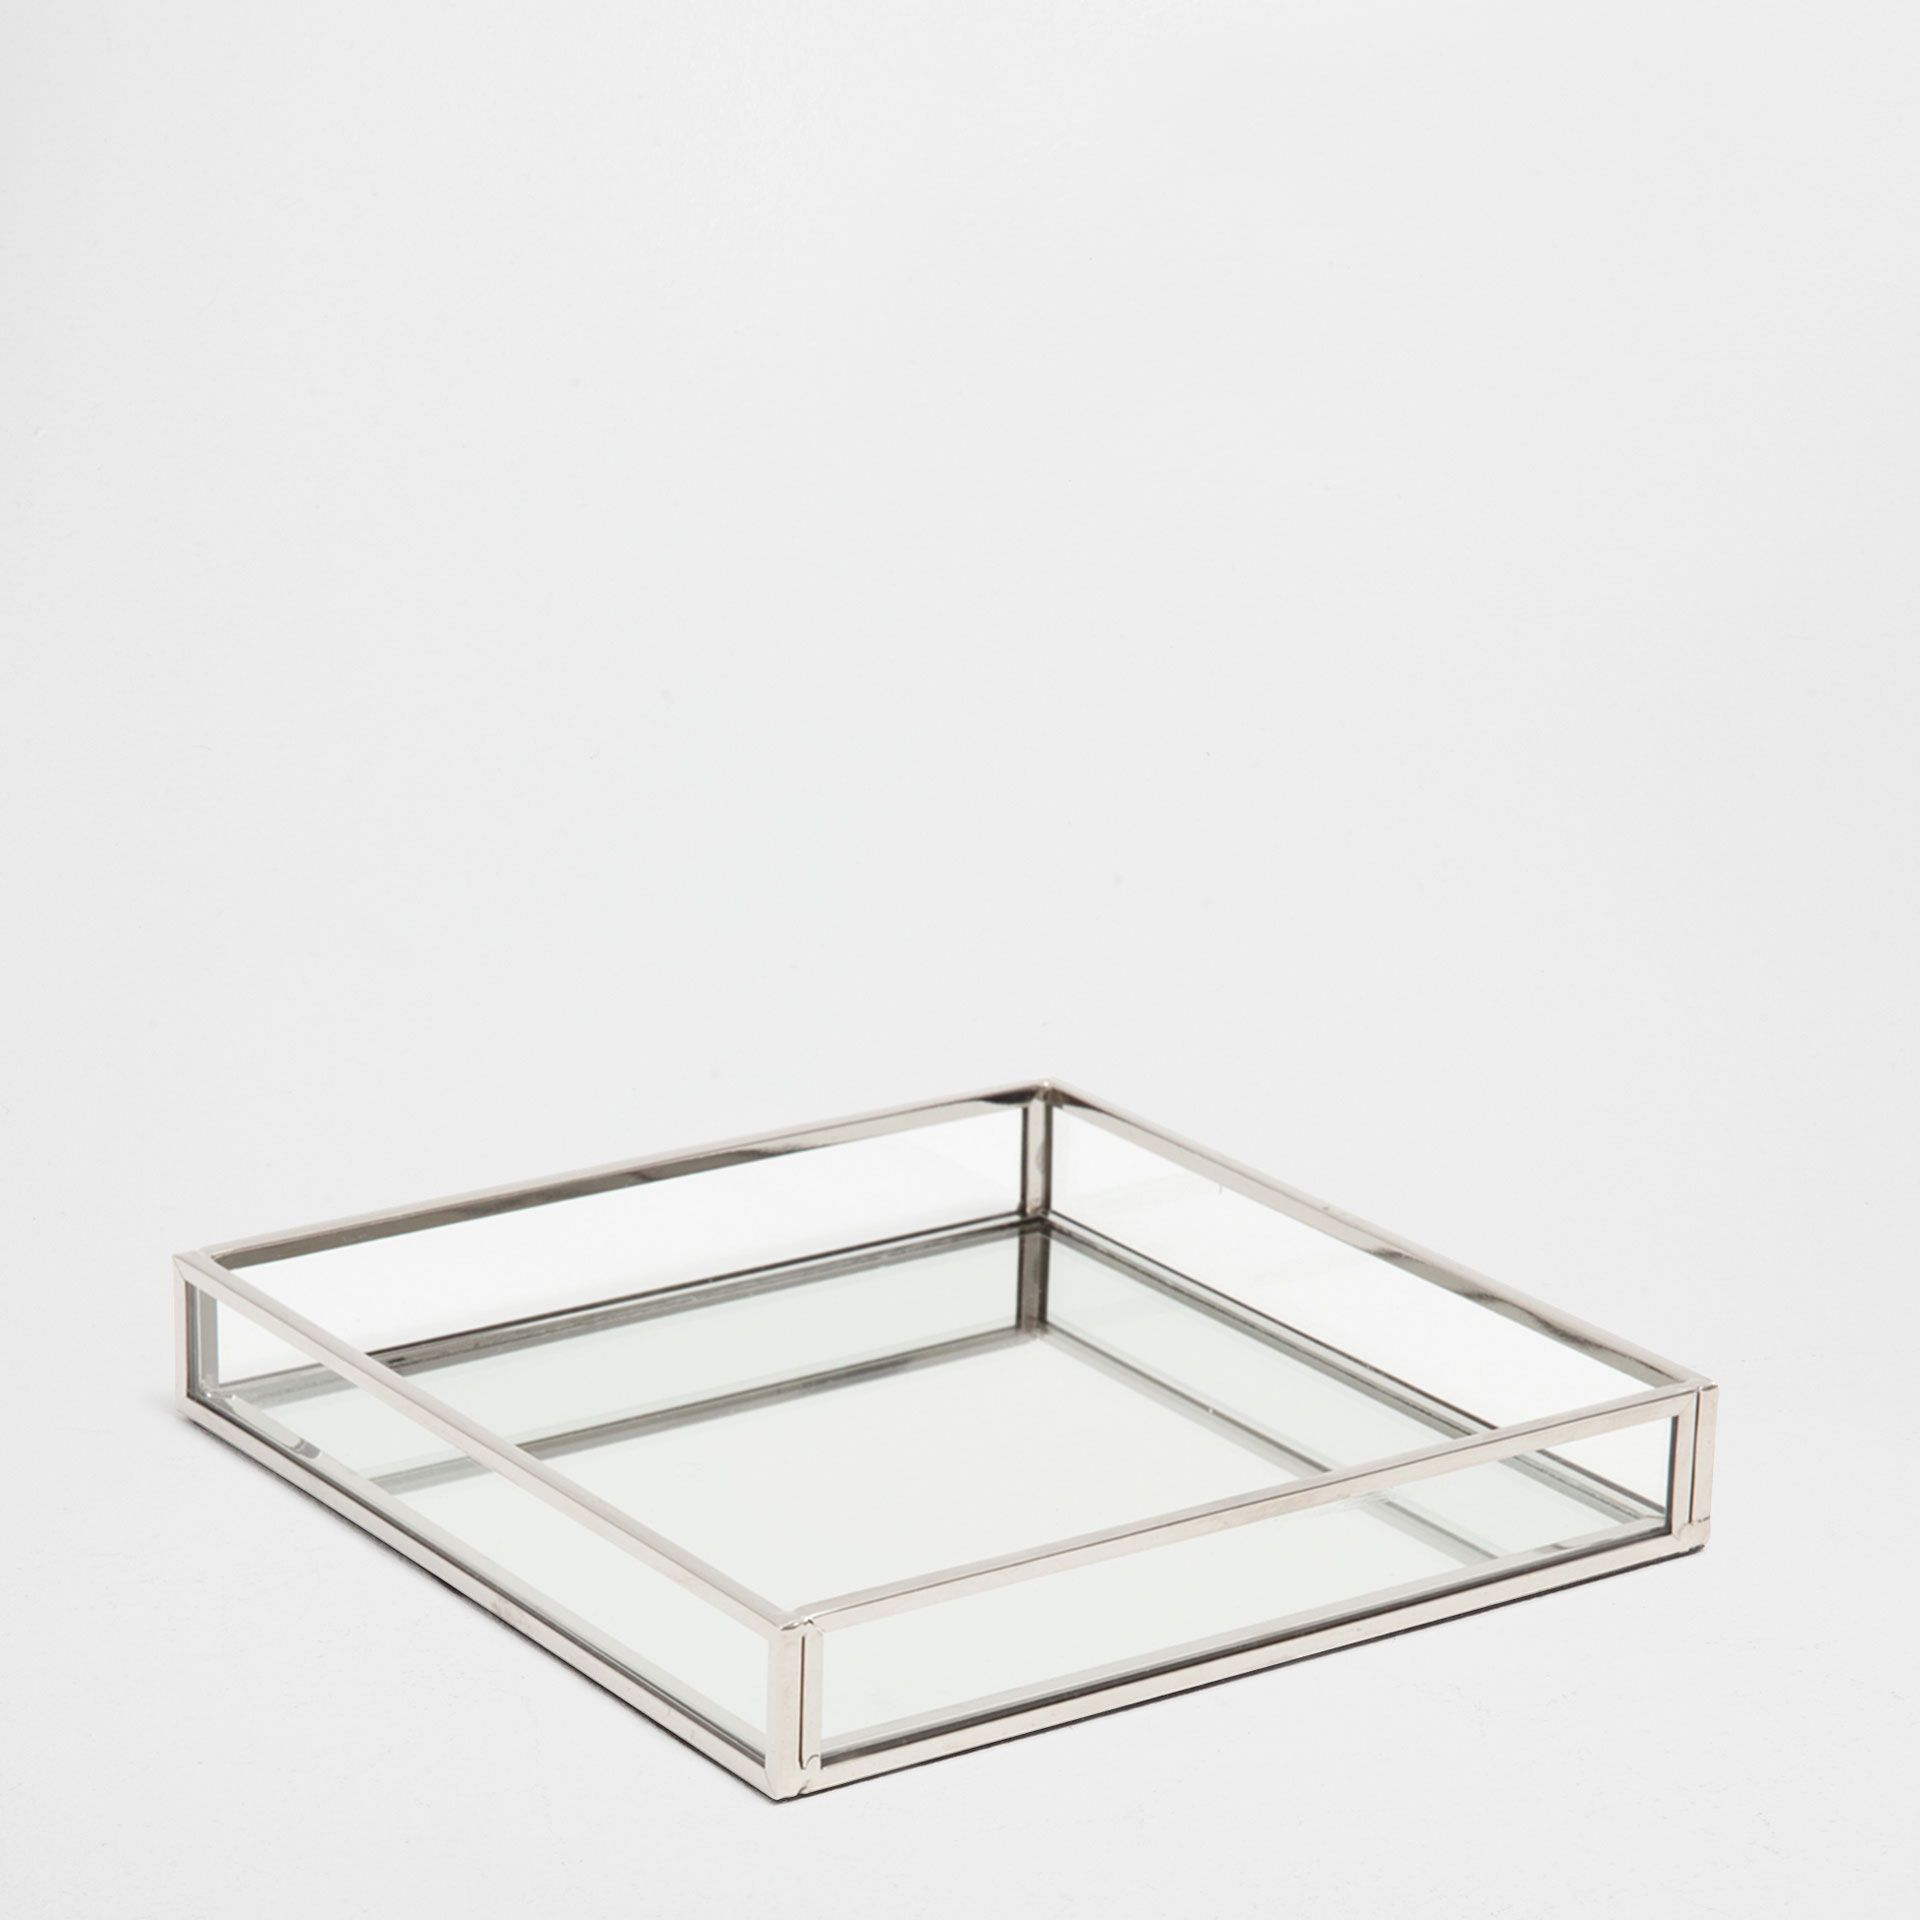 Image 1 Of The Product Silver Metal Mirror Decorative Tray